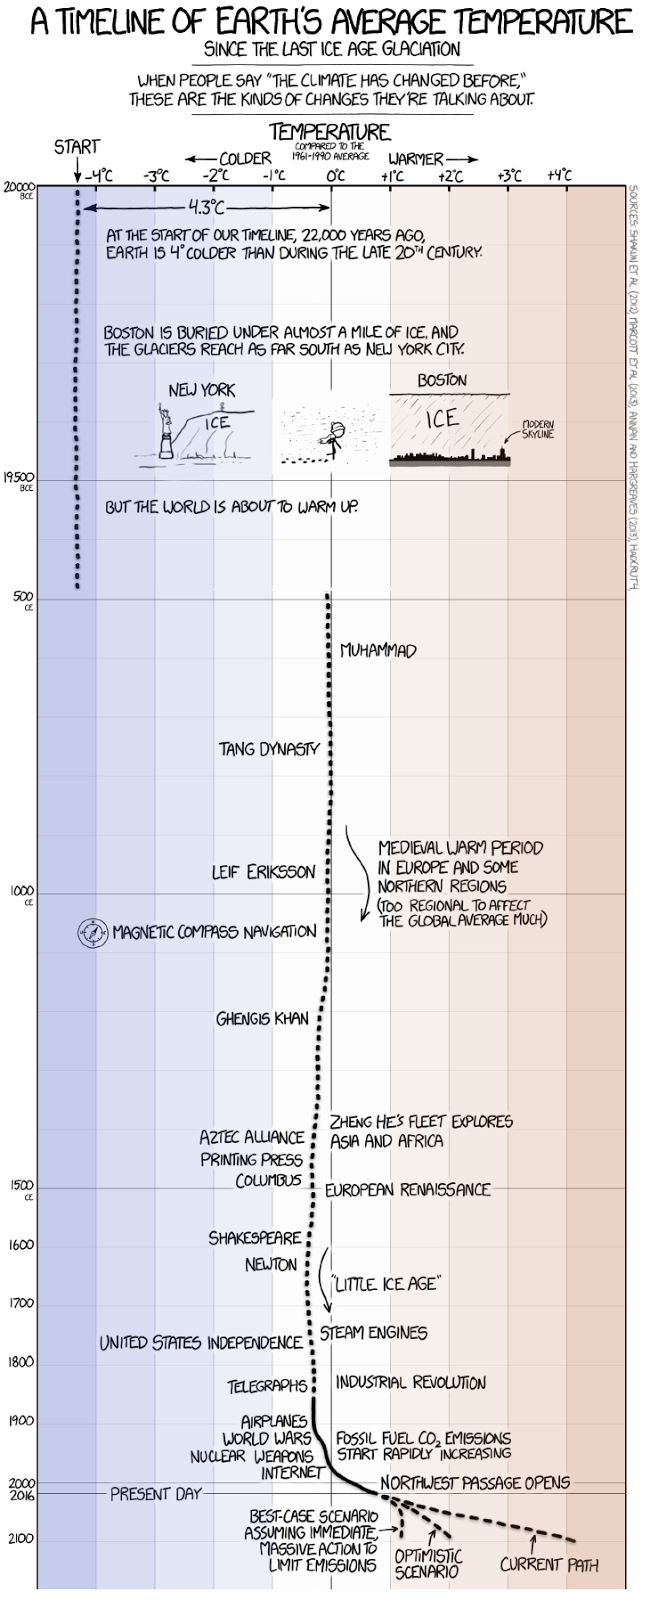 A timeline of Earth's temperature